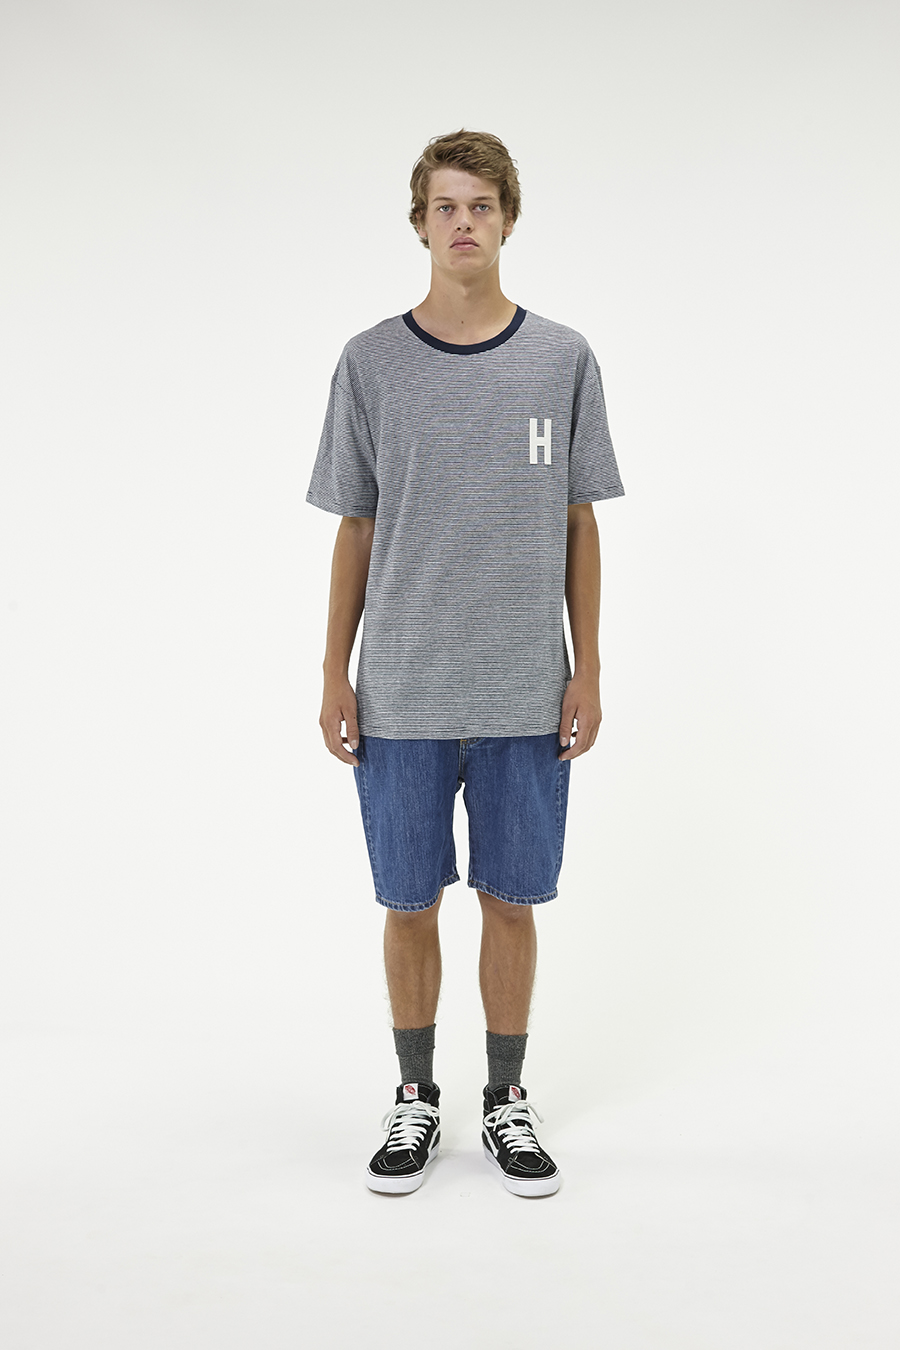 Huffer_Q3-16_M-Weekend-Tee_Navy-01